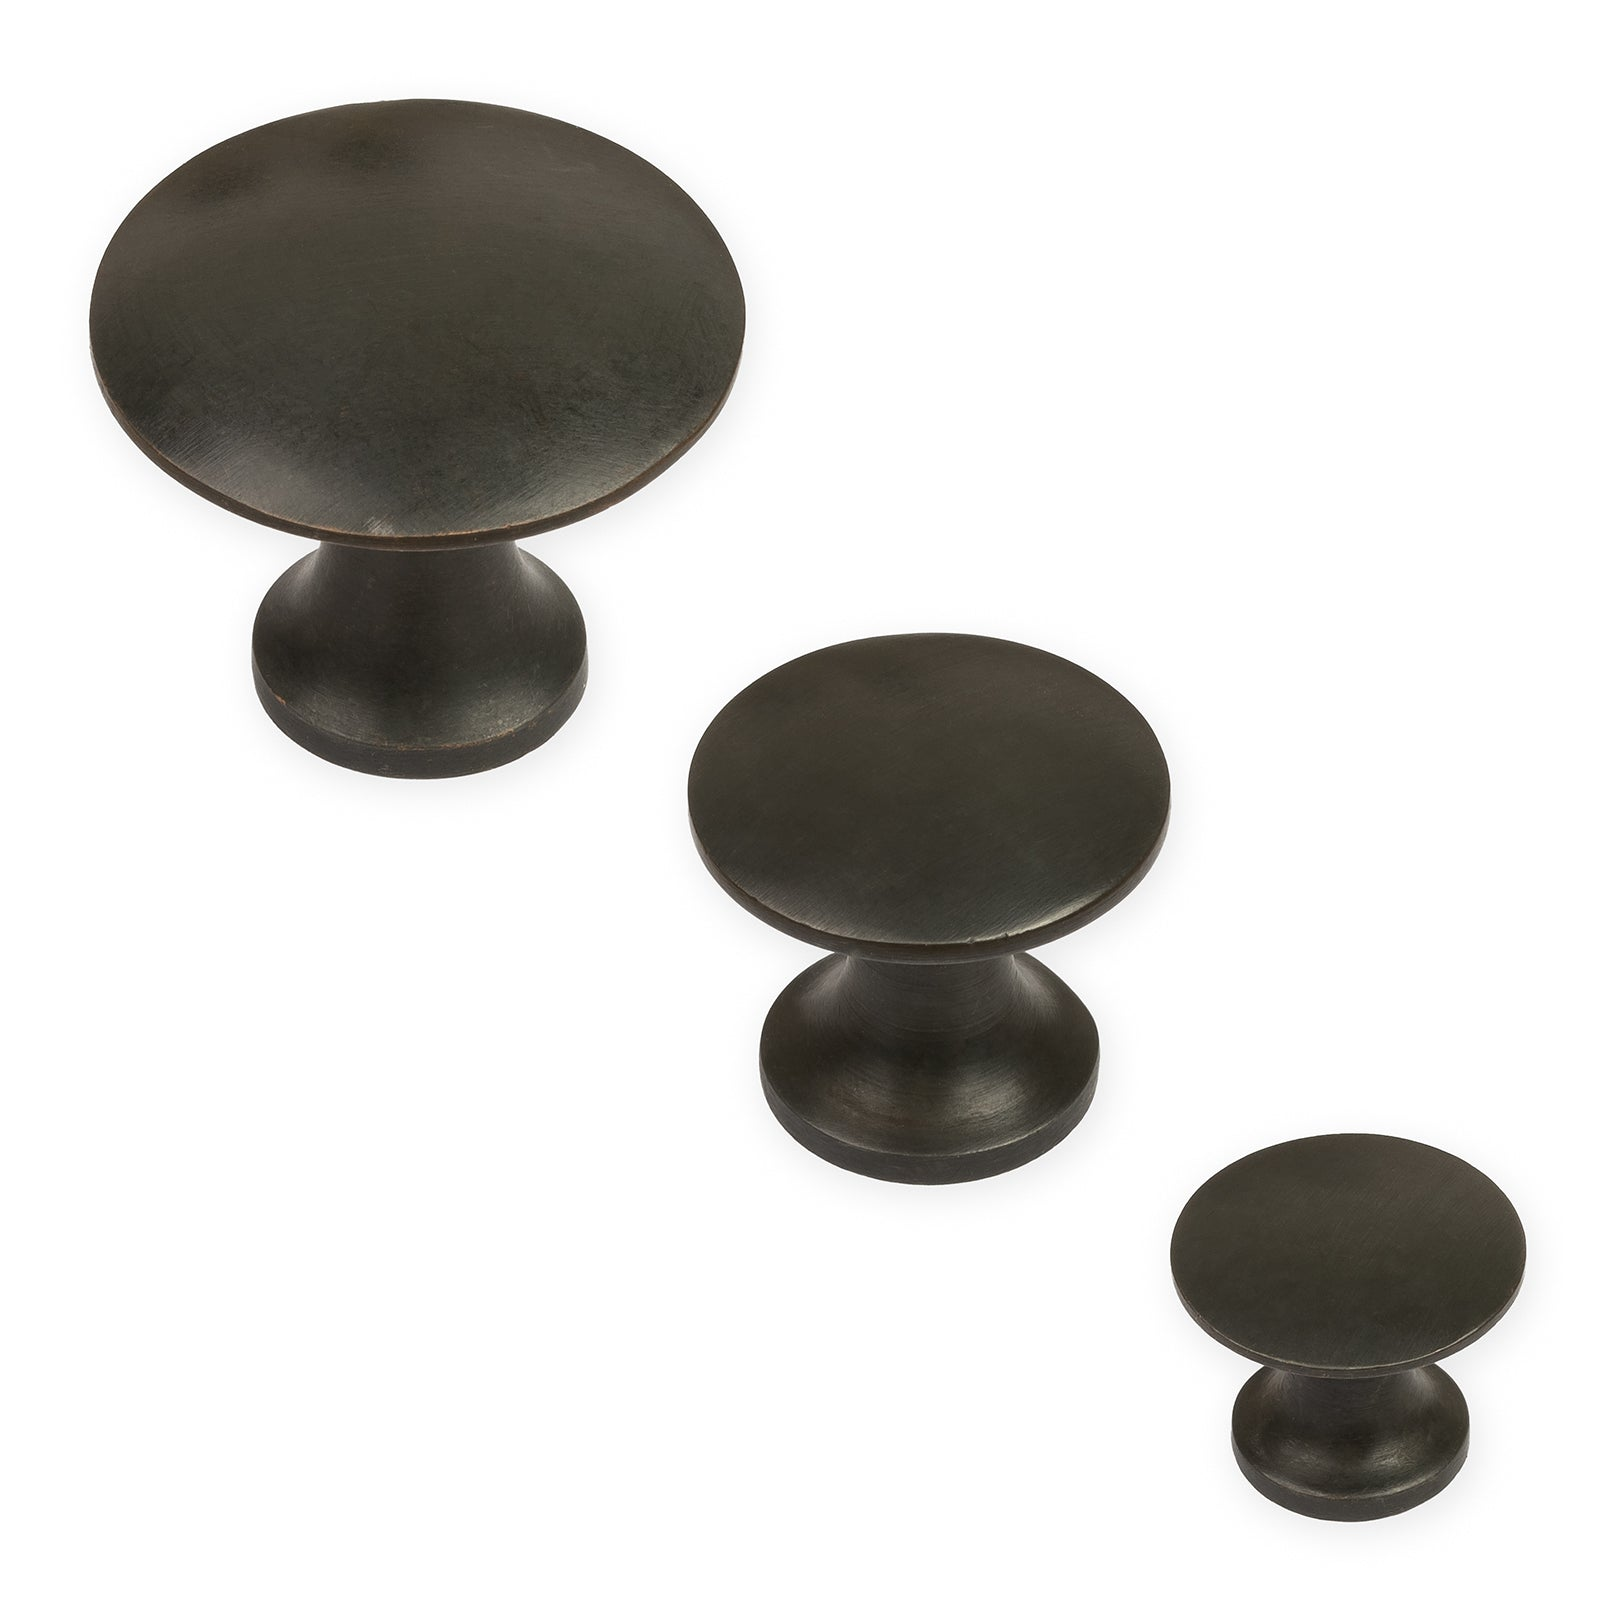 bronze cabinet knobs, bronze kitchen handles